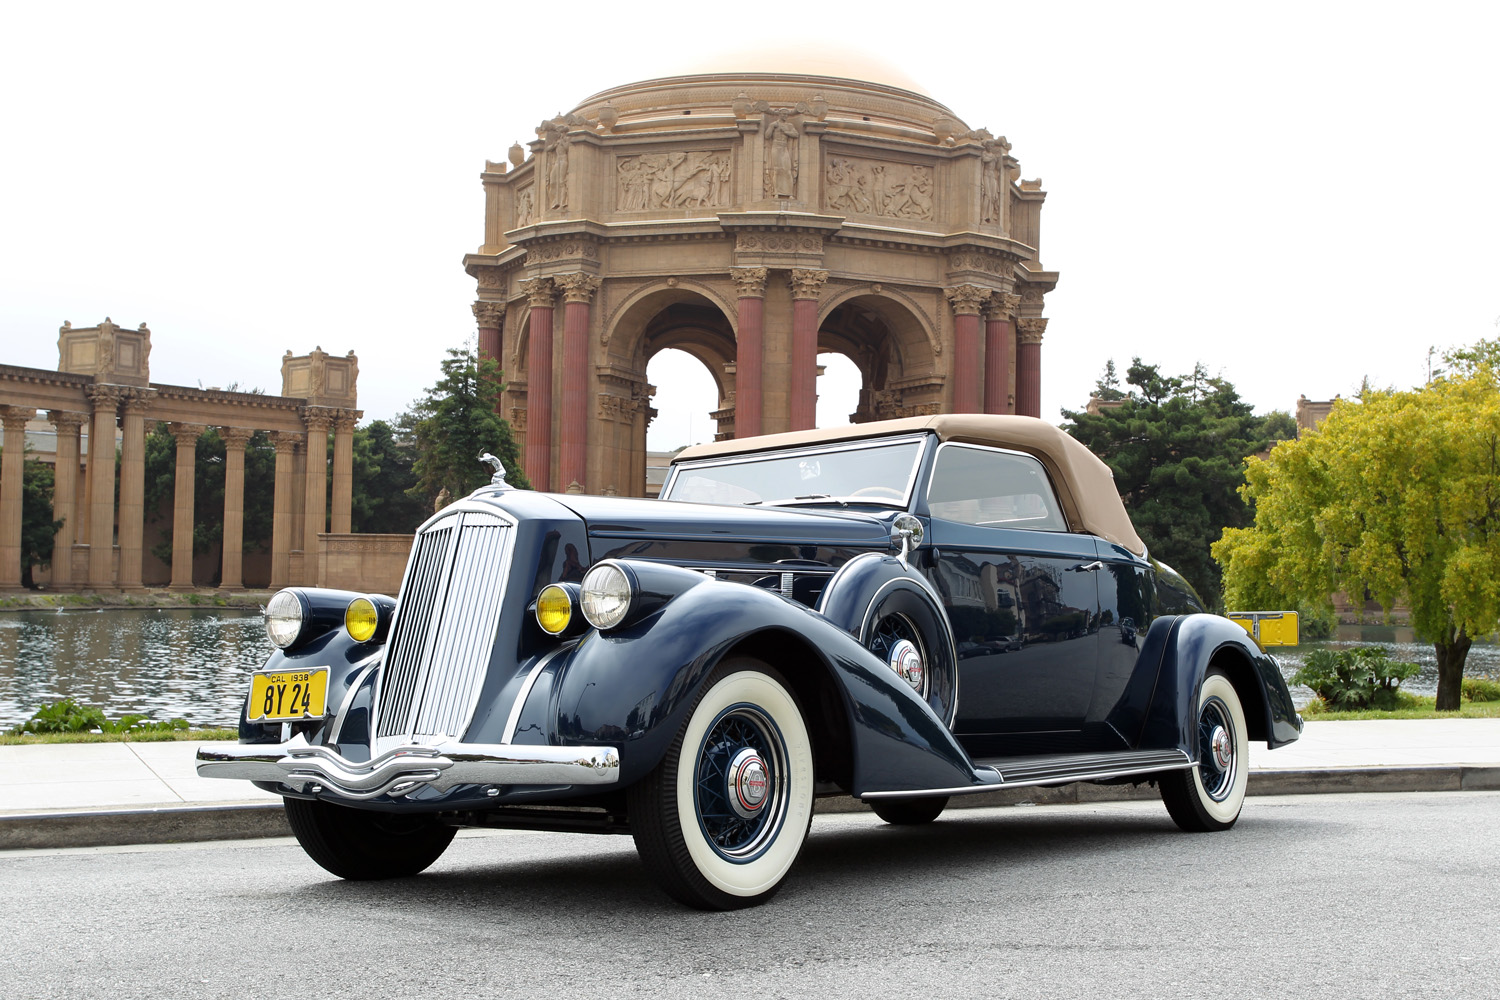 1938 Pierce Arrow